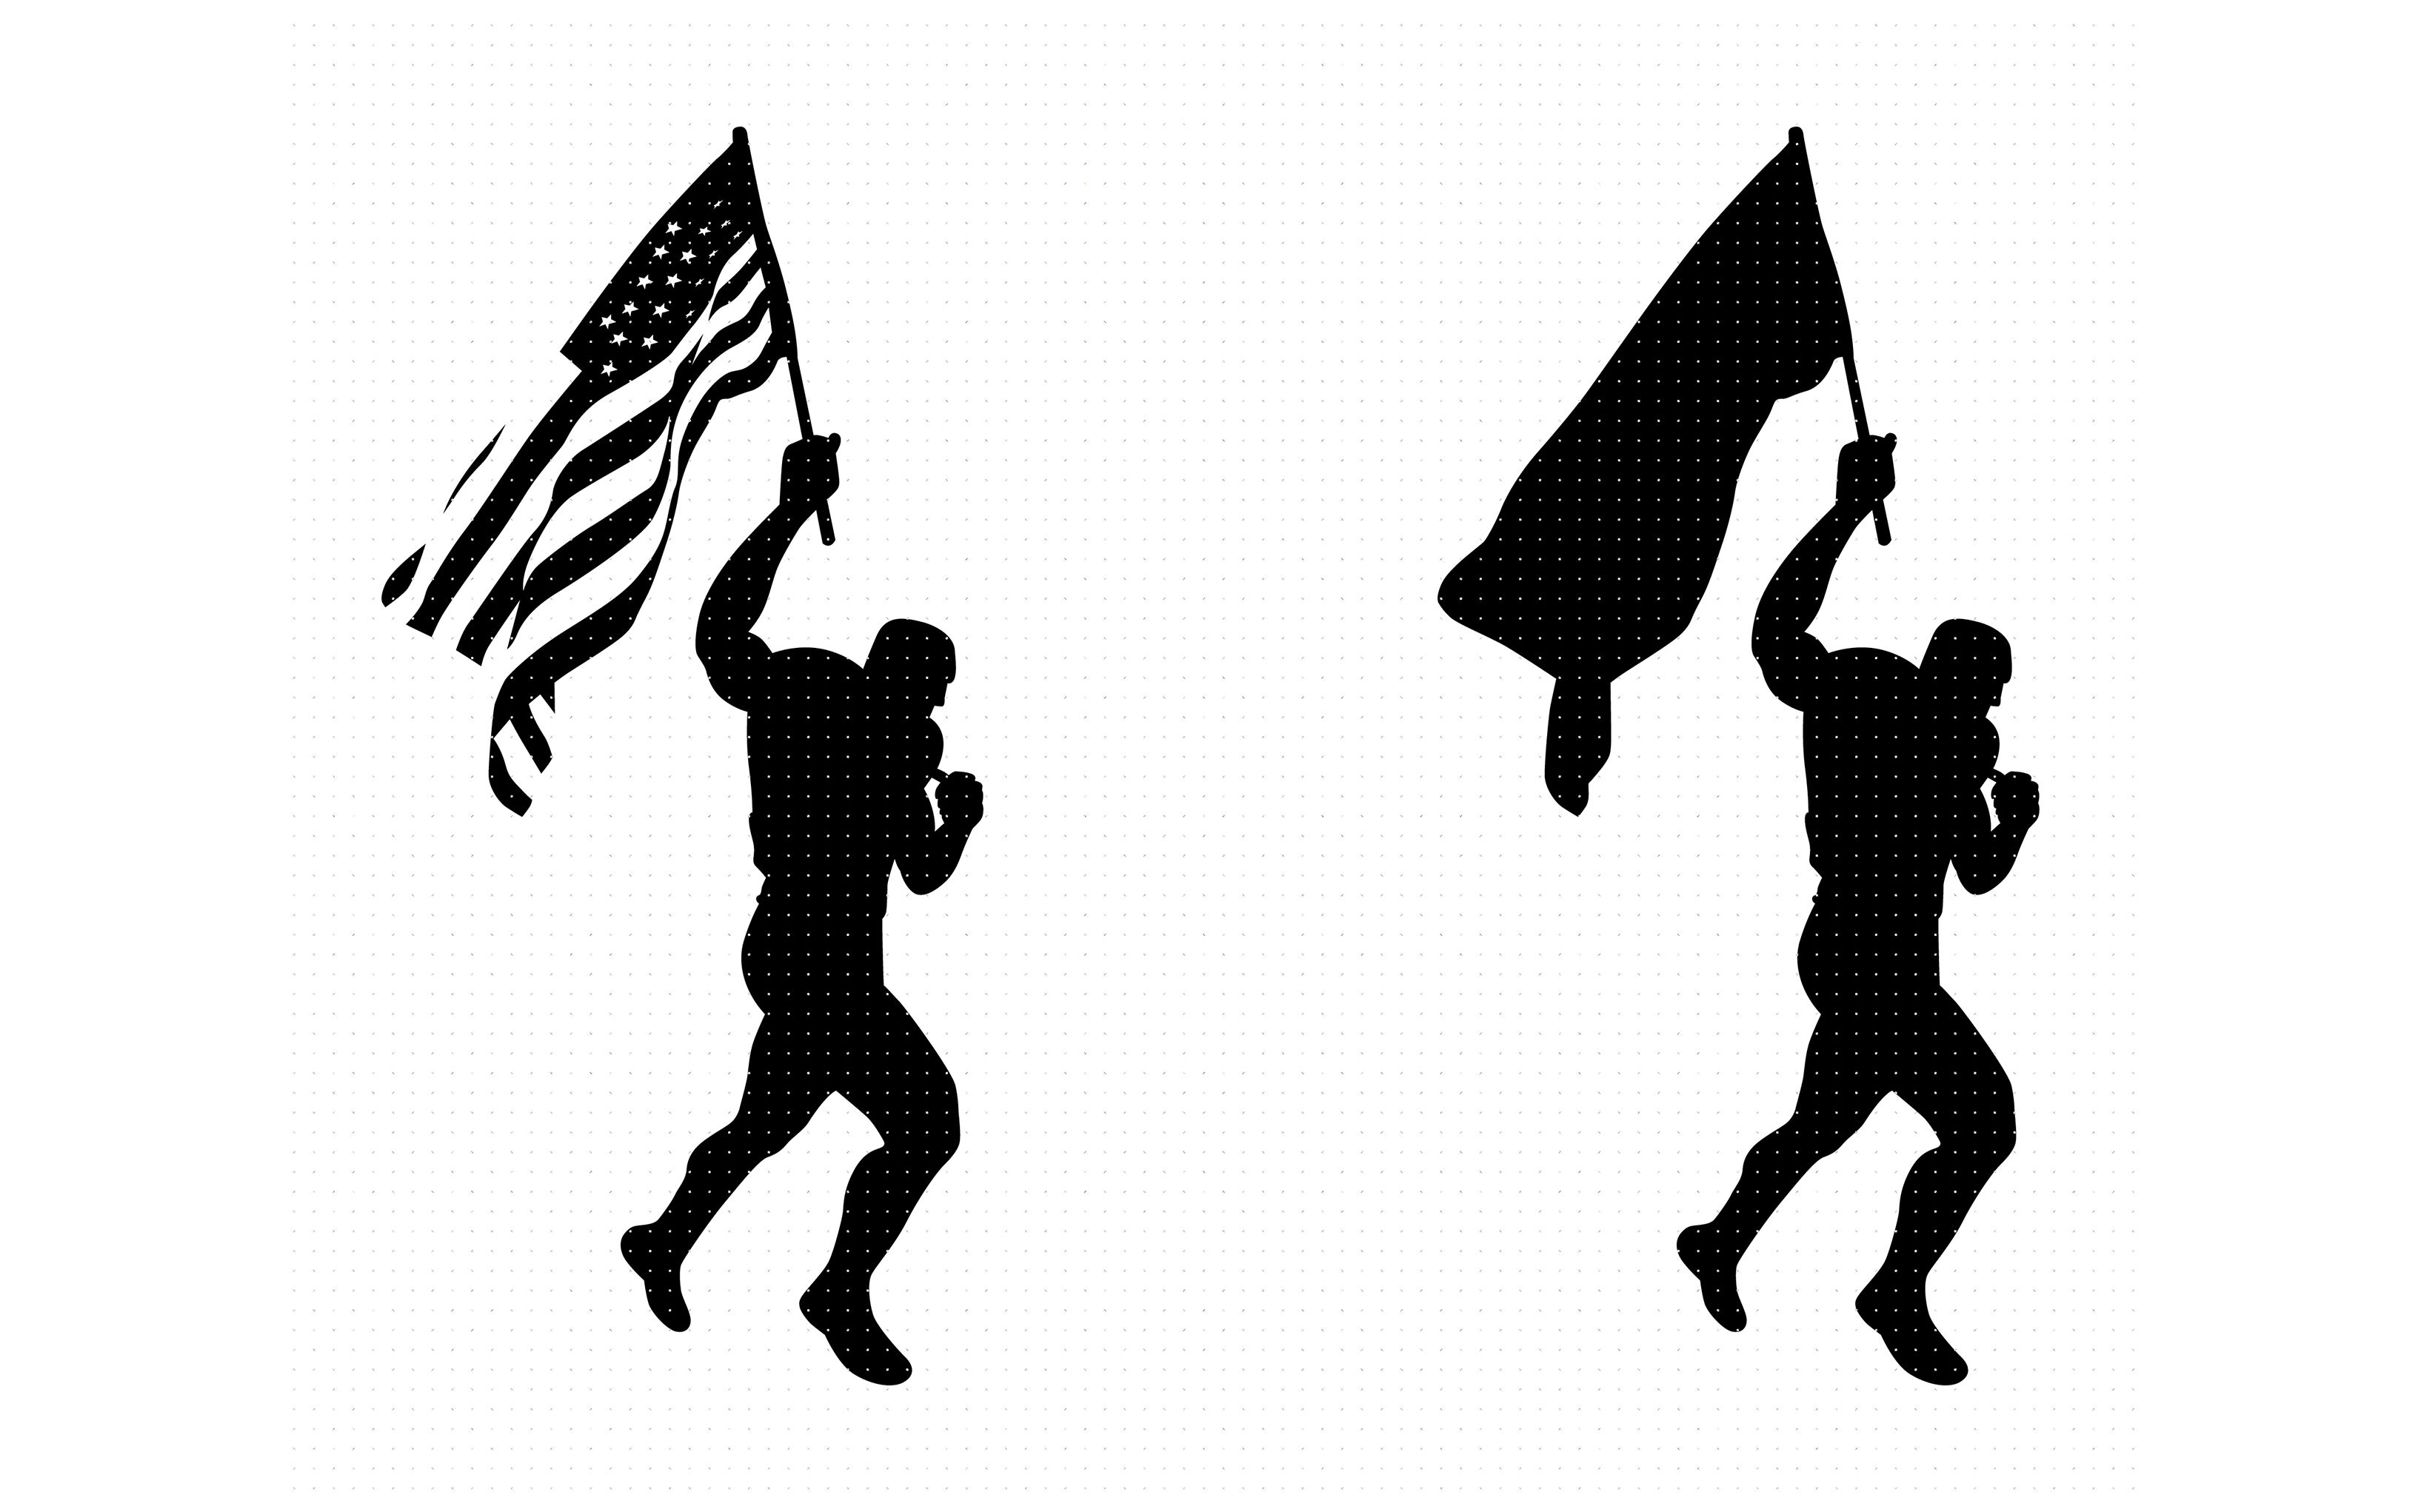 man waving the american flag svg, dxf, vector, eps, clipart.